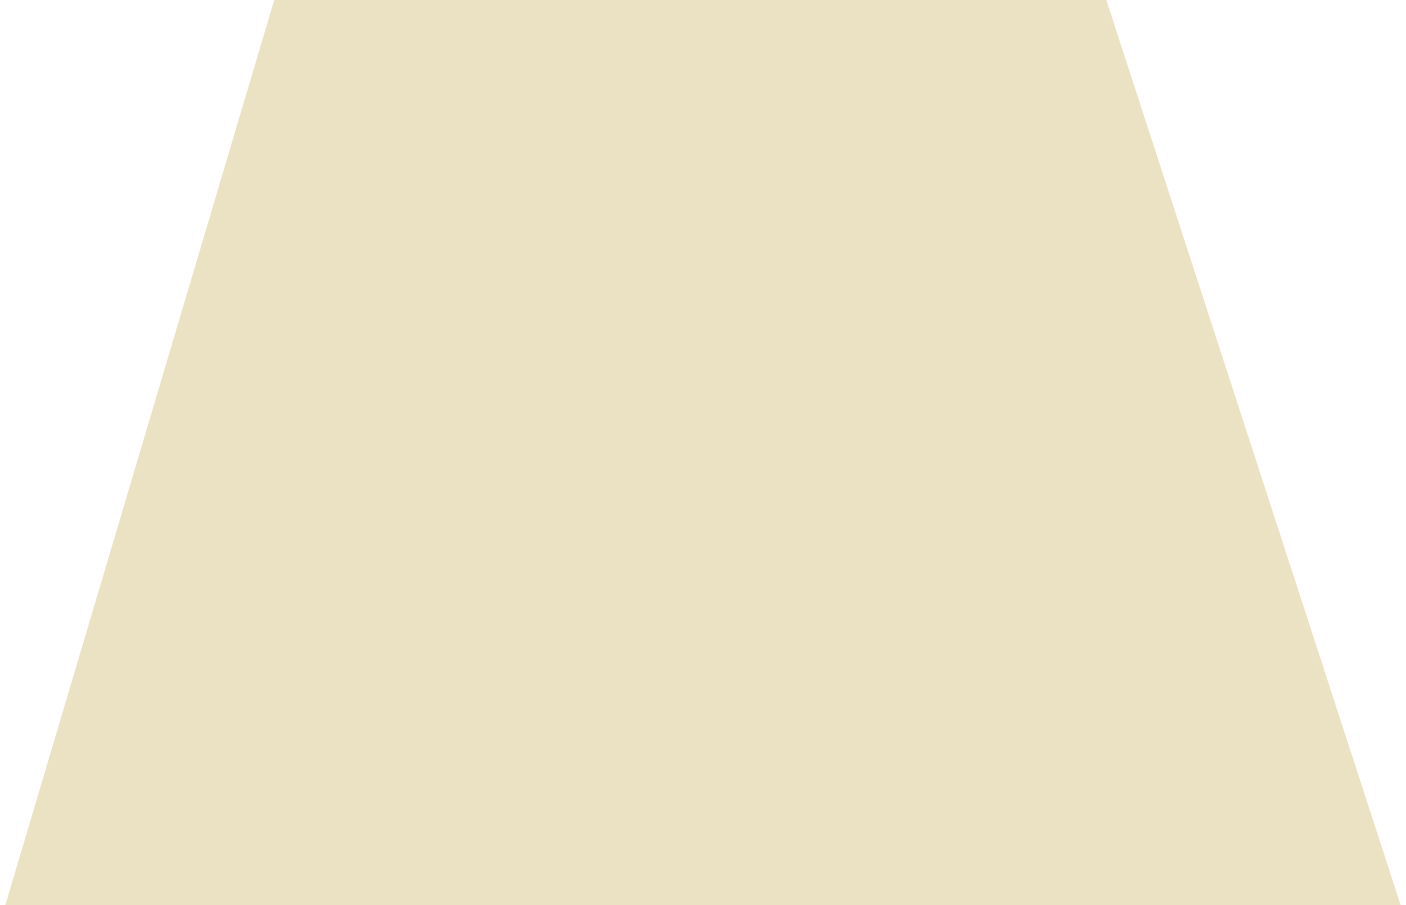 trapeze beige Clipart illustration in PNG, SVG